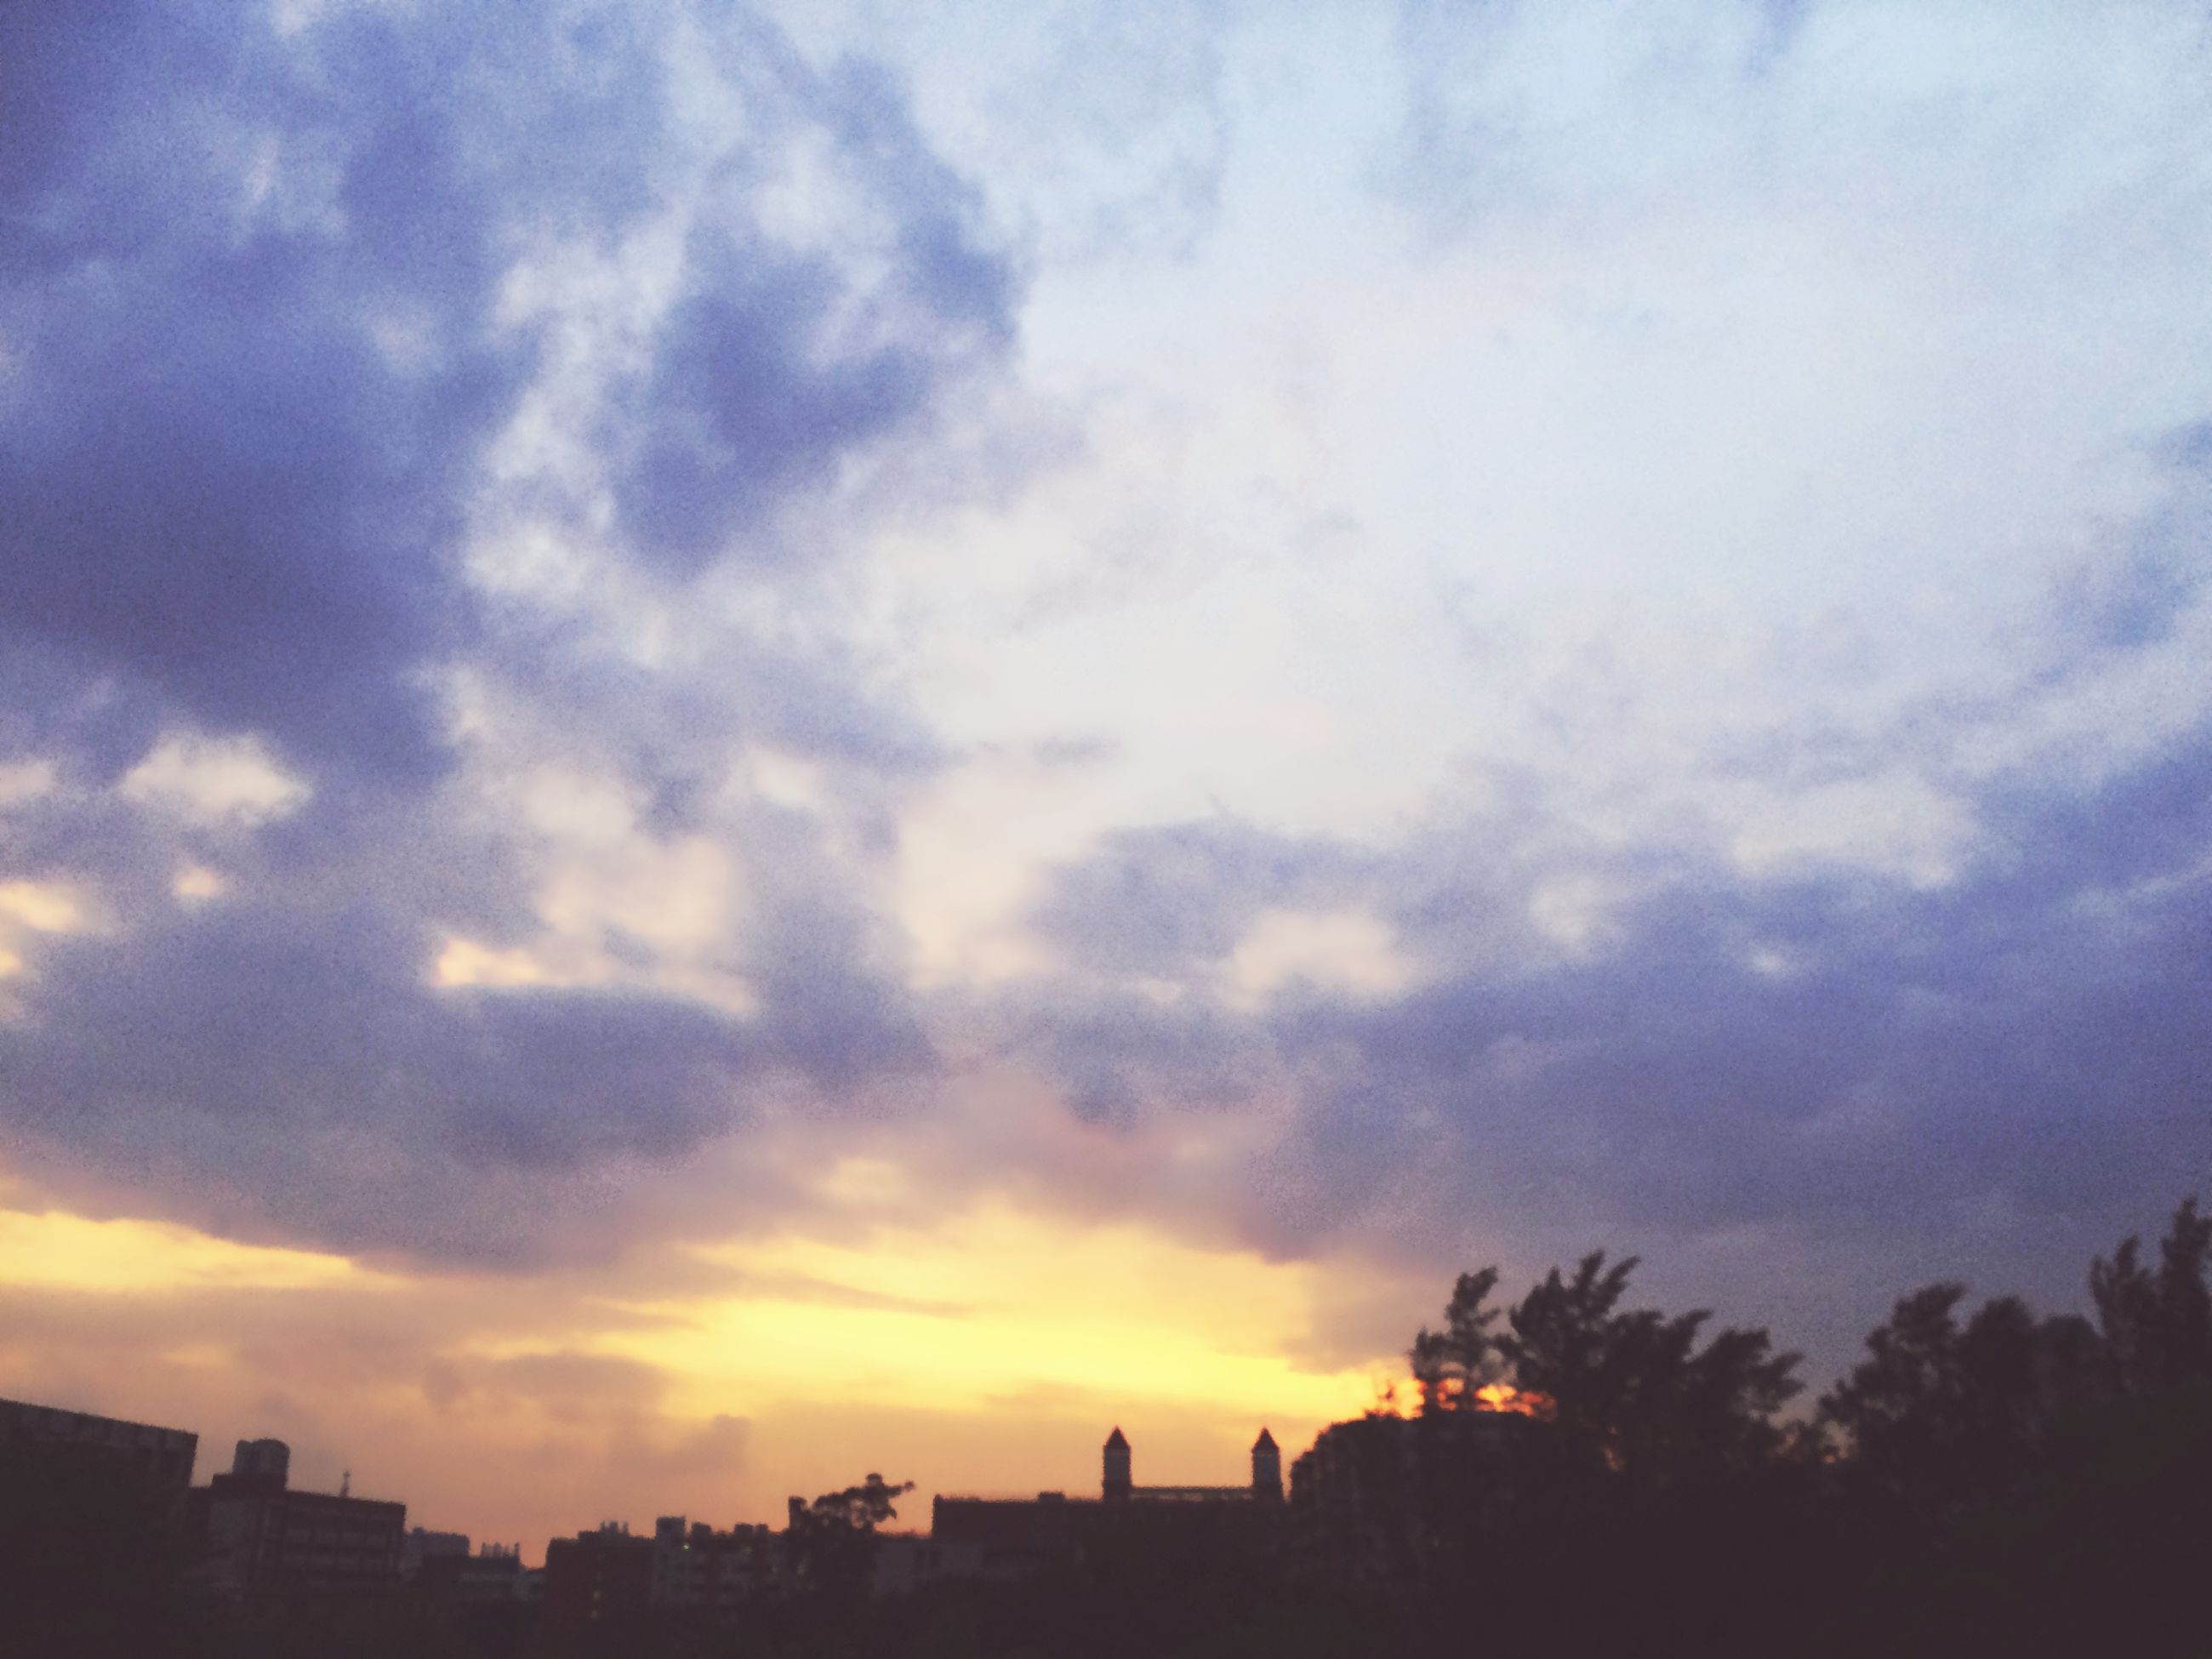 sky, sunset, silhouette, building exterior, cloud - sky, architecture, built structure, tree, cloudy, city, cloud, beauty in nature, scenics, nature, dusk, outdoors, low angle view, tranquility, tranquil scene, residential building